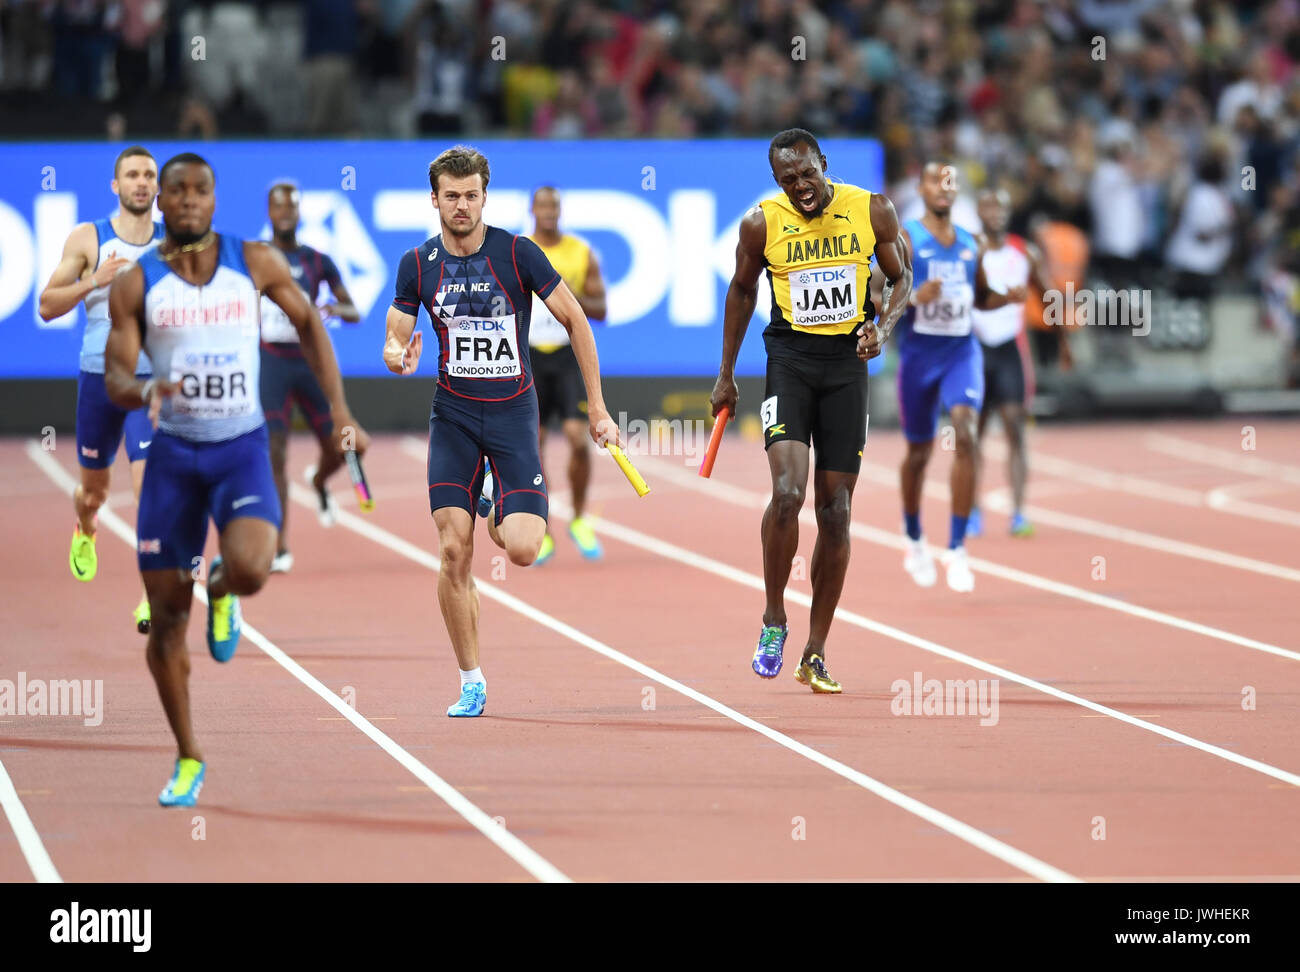 London, UK. 12th August, 2017. Usain Bolt pulled up injured in his final ever race, at the 4x100 relays at the IAAF Athletics World Championships London 2017 Credit: Mariano Garcia/Alamy Live News - Stock Image